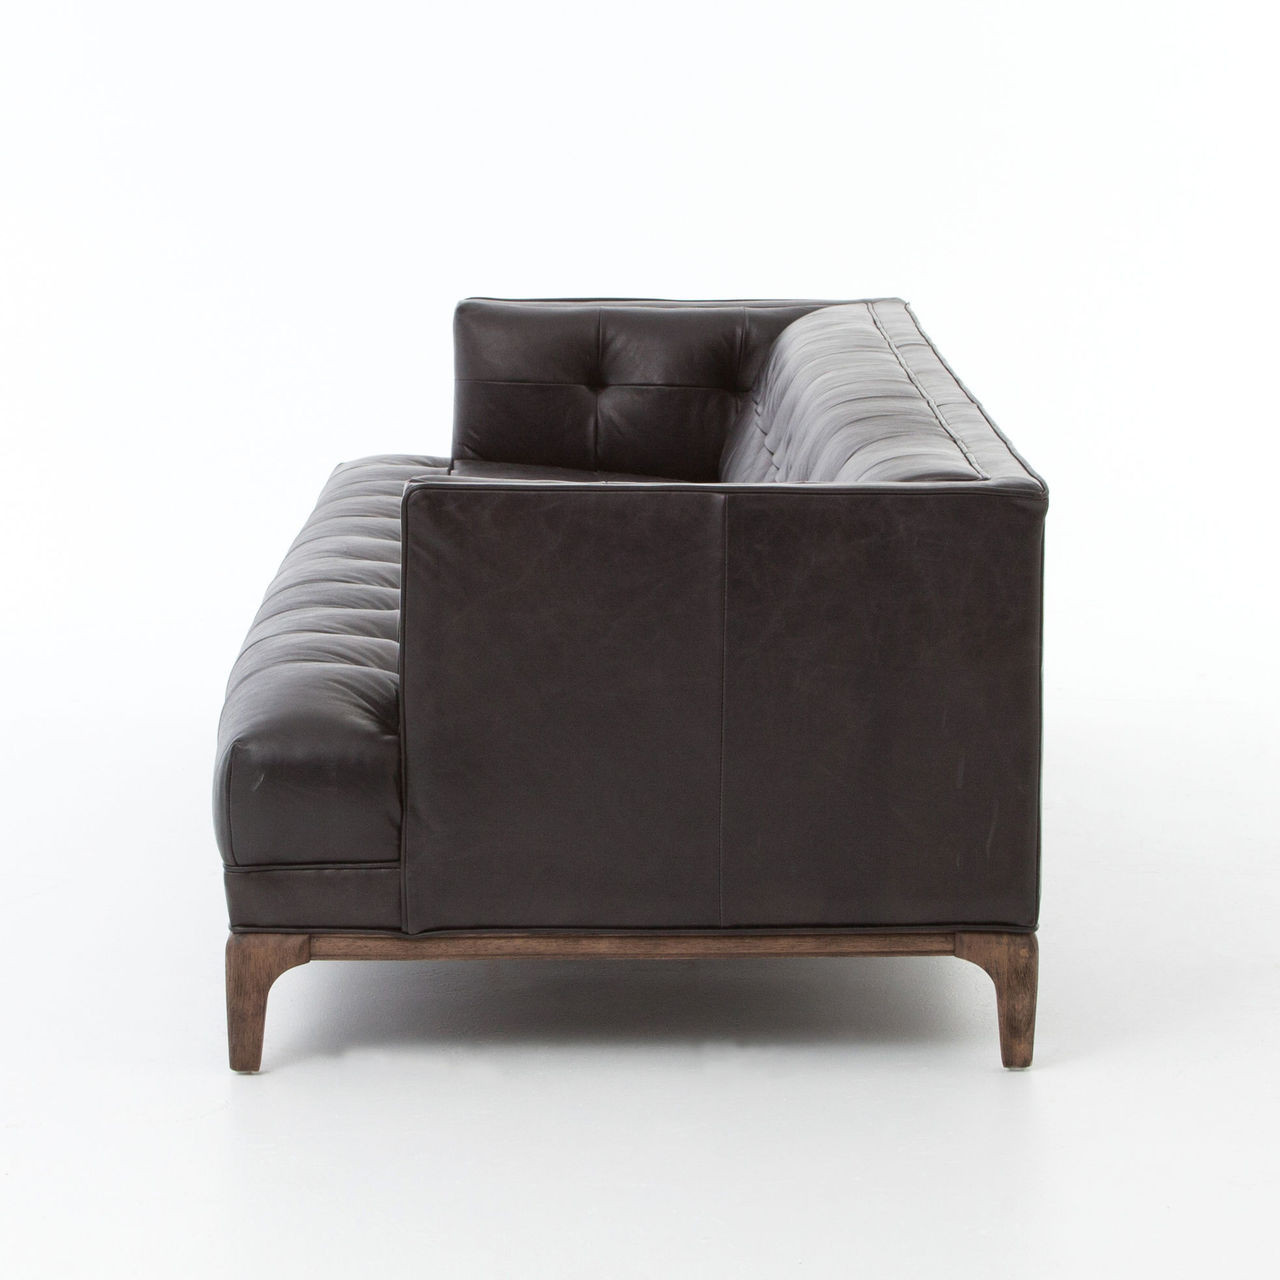 Dylan Mid-Century Modern Blind Tufted Black Leather Sofa | Zin Home